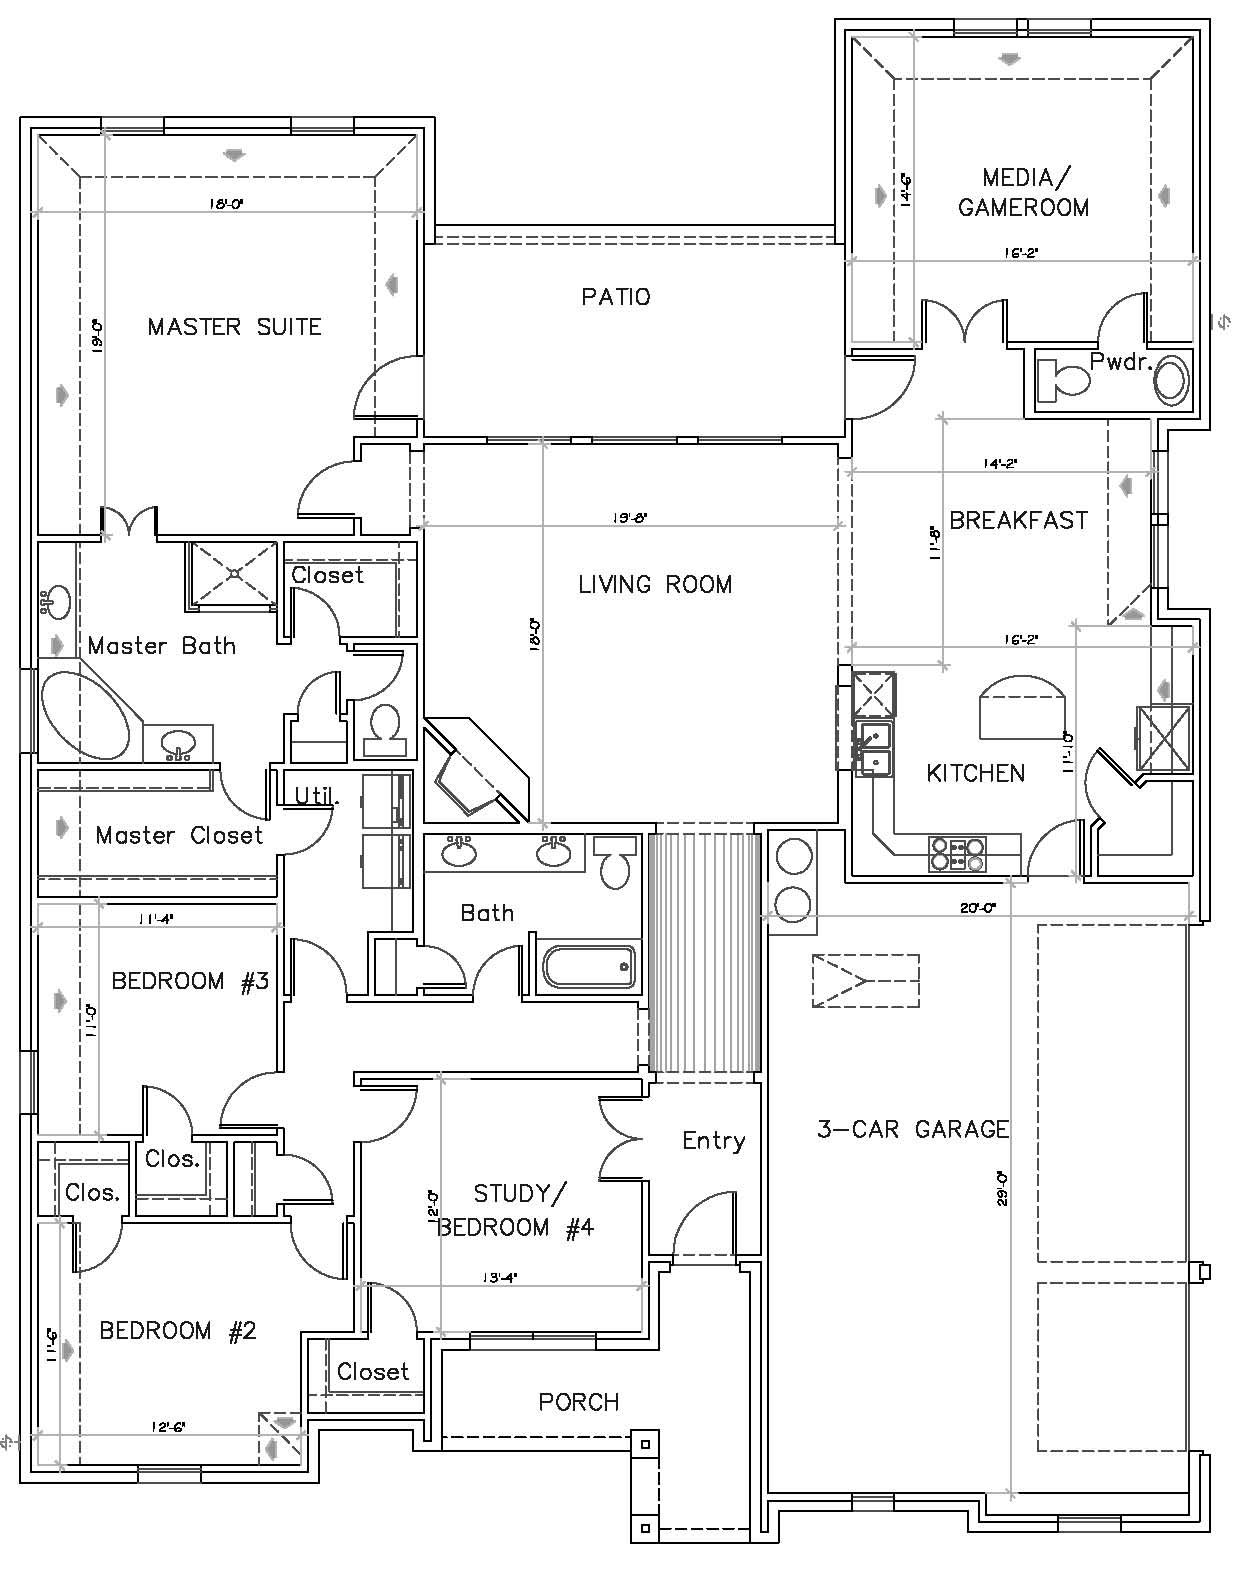 Not liking where the Garage entrance is but loving that they have – Texas Ranch House Floor Plans